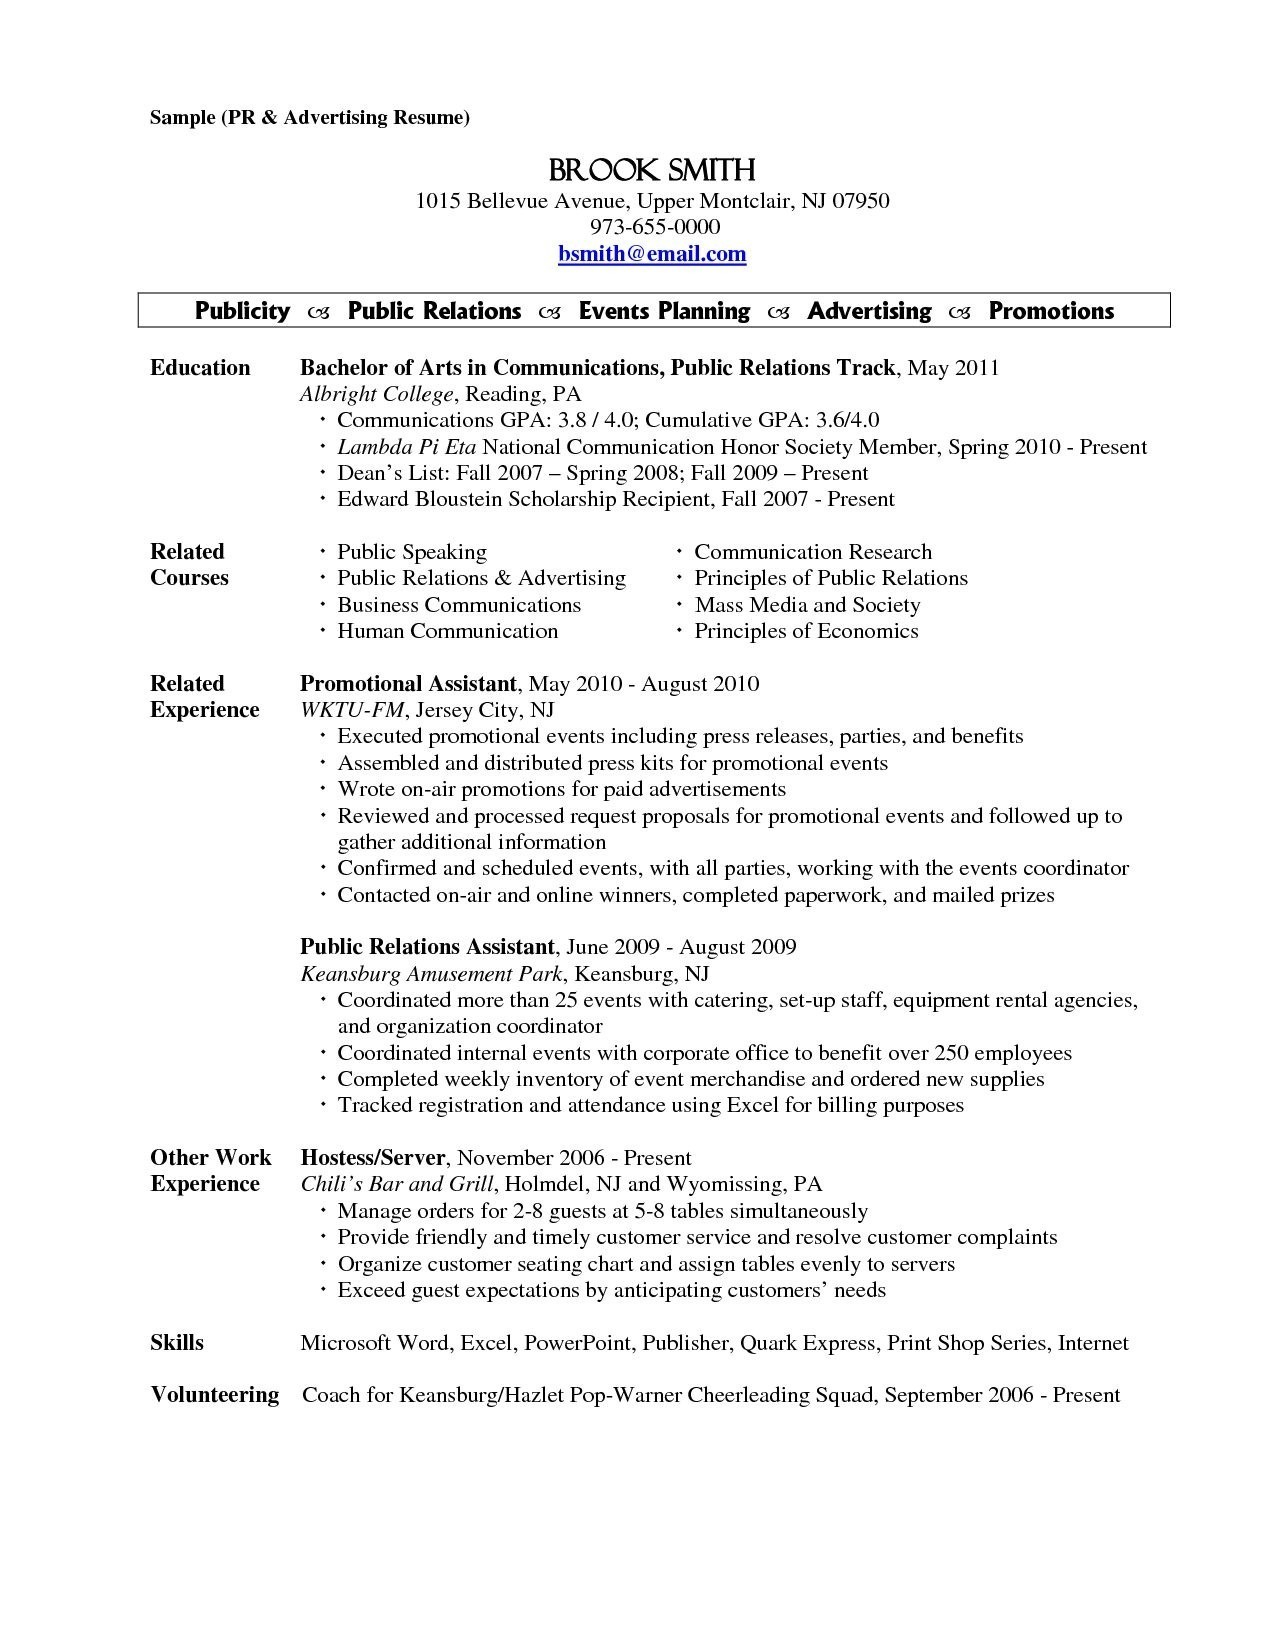 Banquet Server Resume Description - Fine Dining Server Resume Unique Restaurant Server Resume Sample